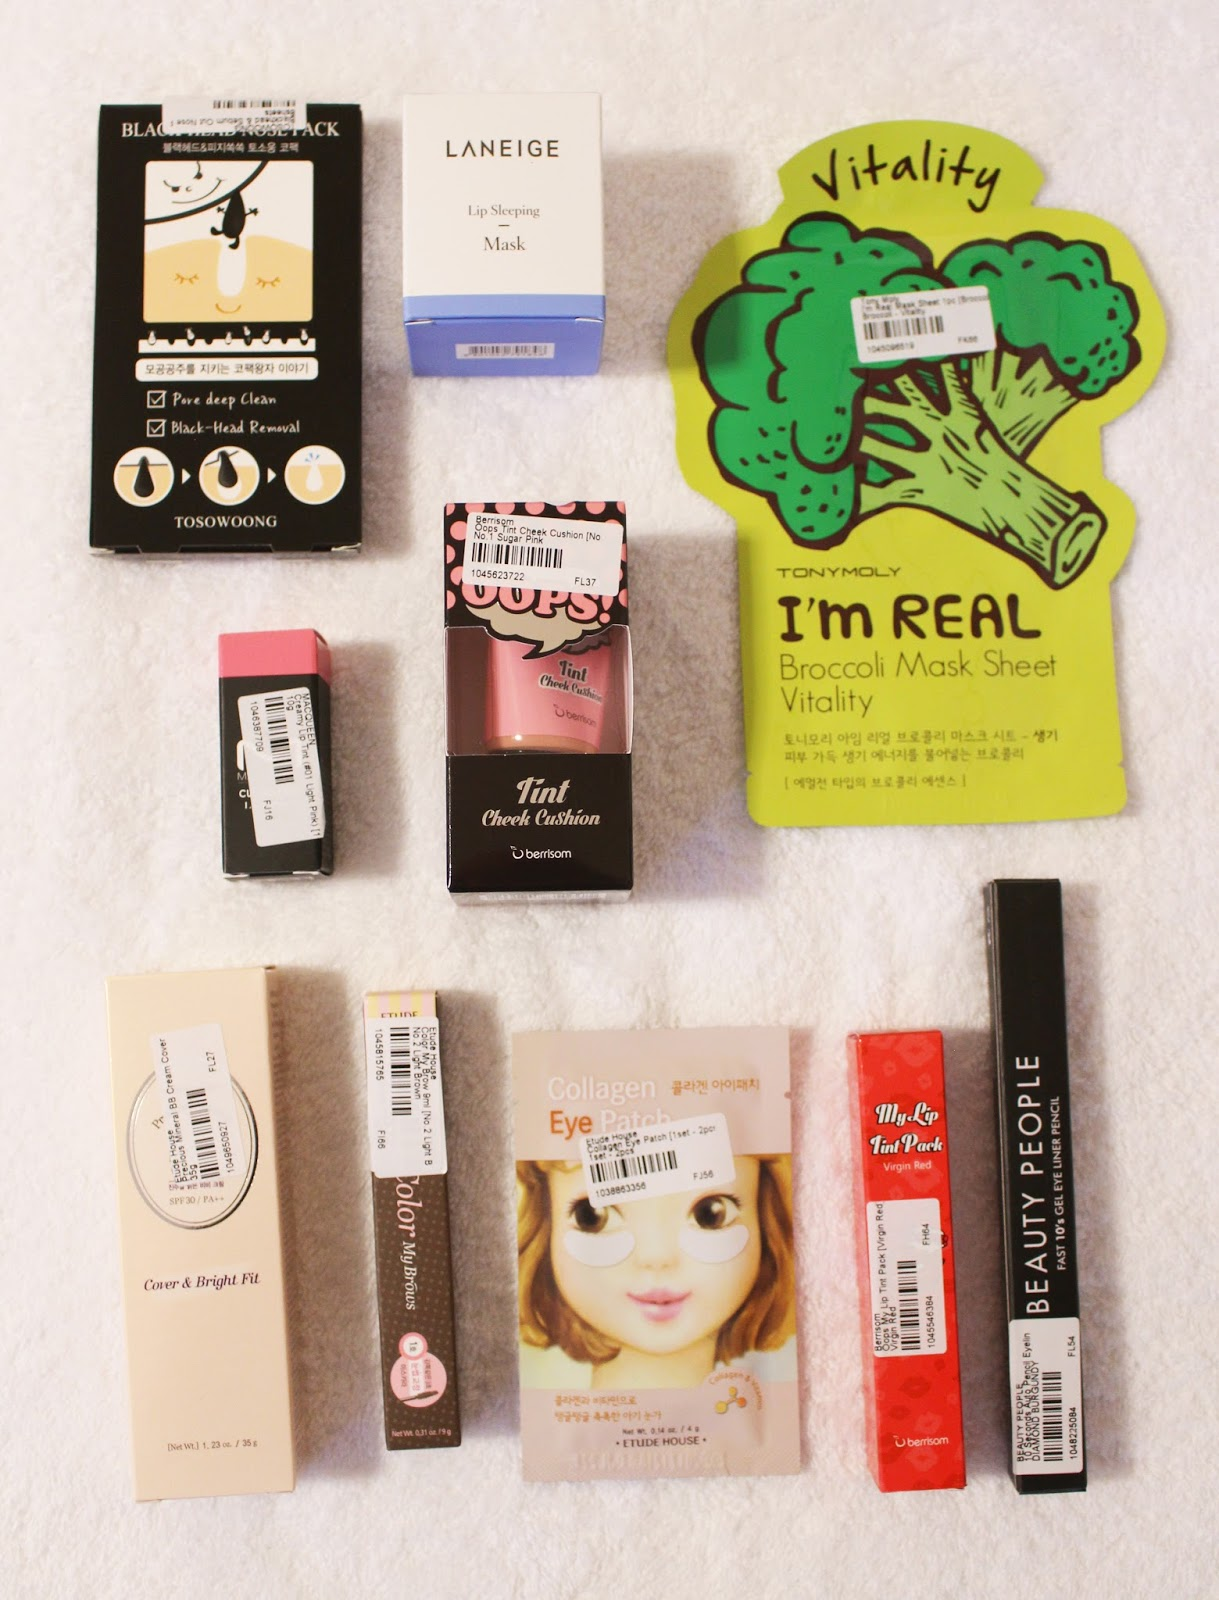 Fantail Flo Berrisom Lip Tint Etude House Eyebrow Review Color My Brow Yesstyle Blog Beauty Box Korean Makeup Oops